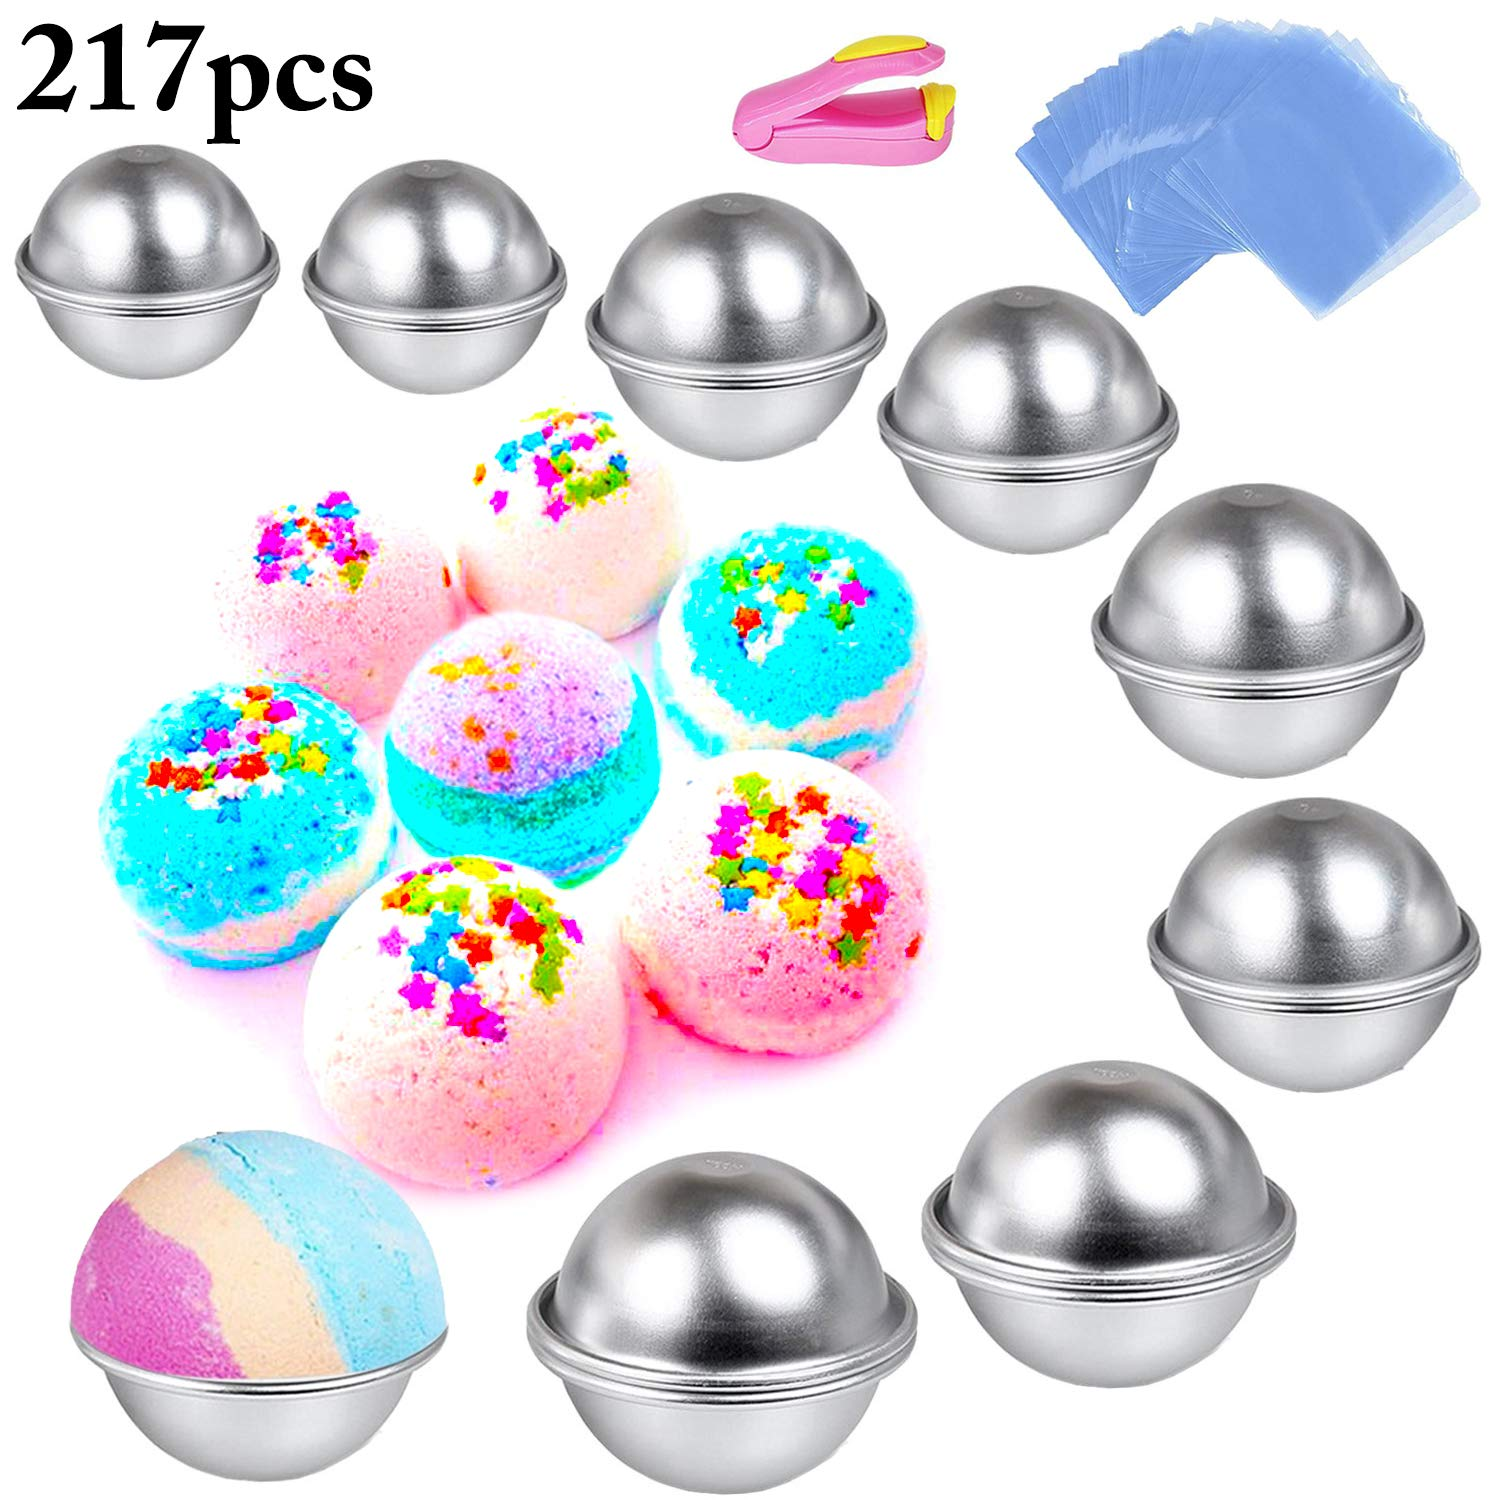 Bath Bomb Mold, Outgeek 217Pcs DIY Bath Bomb Kit Include Metal Bath Bomb Mold 8 Set 16 Pieces 5 Size, 200 Shrink Wrap Bags, Mini Heat Sealer for Bath Bombs Making & Soaps by Outgeek (Image #1)